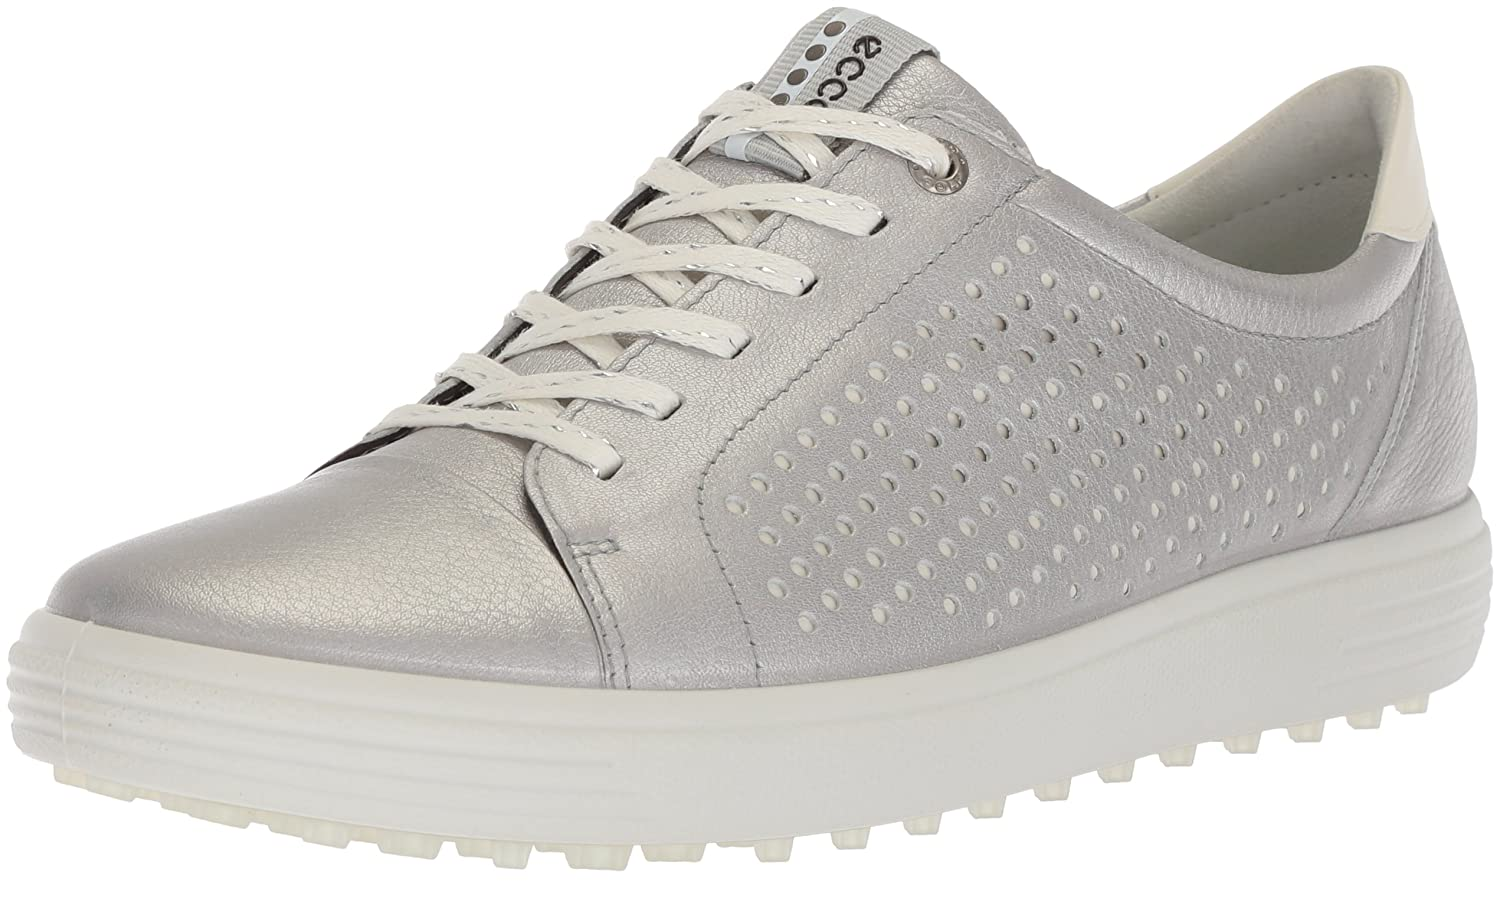 ECCO Women's Casual Hybrid Perforated Golf Shoe B074F8P65Y 42 M EU (11-11.5 US)|Alusilver